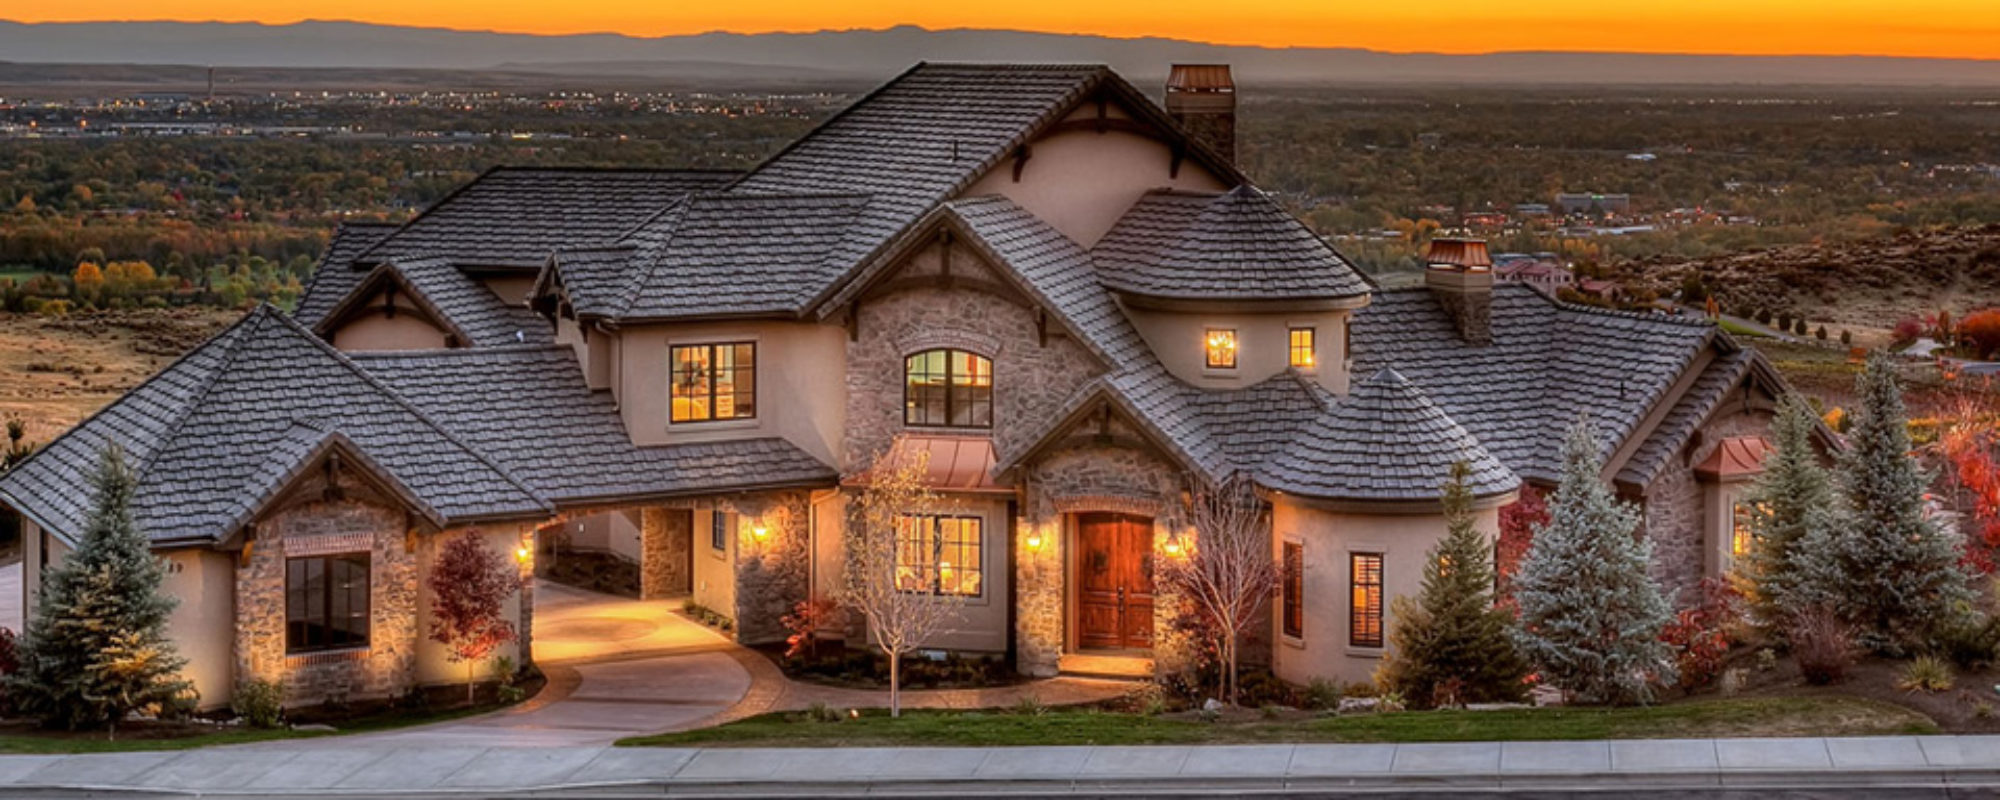 Buy Your Idaho Home Today!